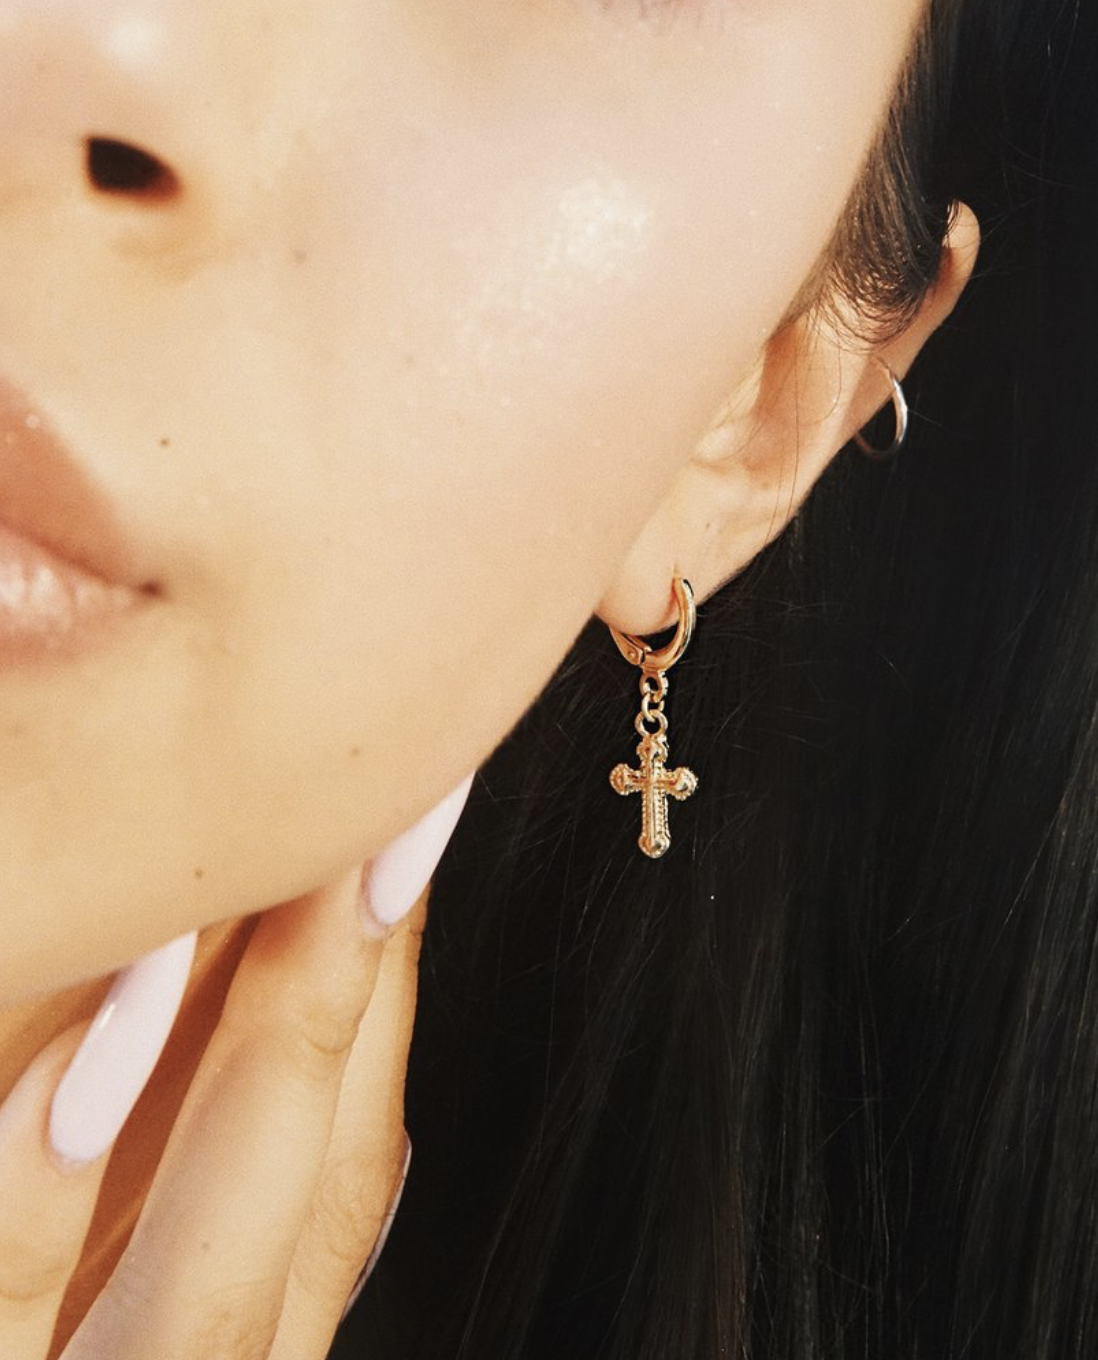 8 Other Reasons Blissful Earrings